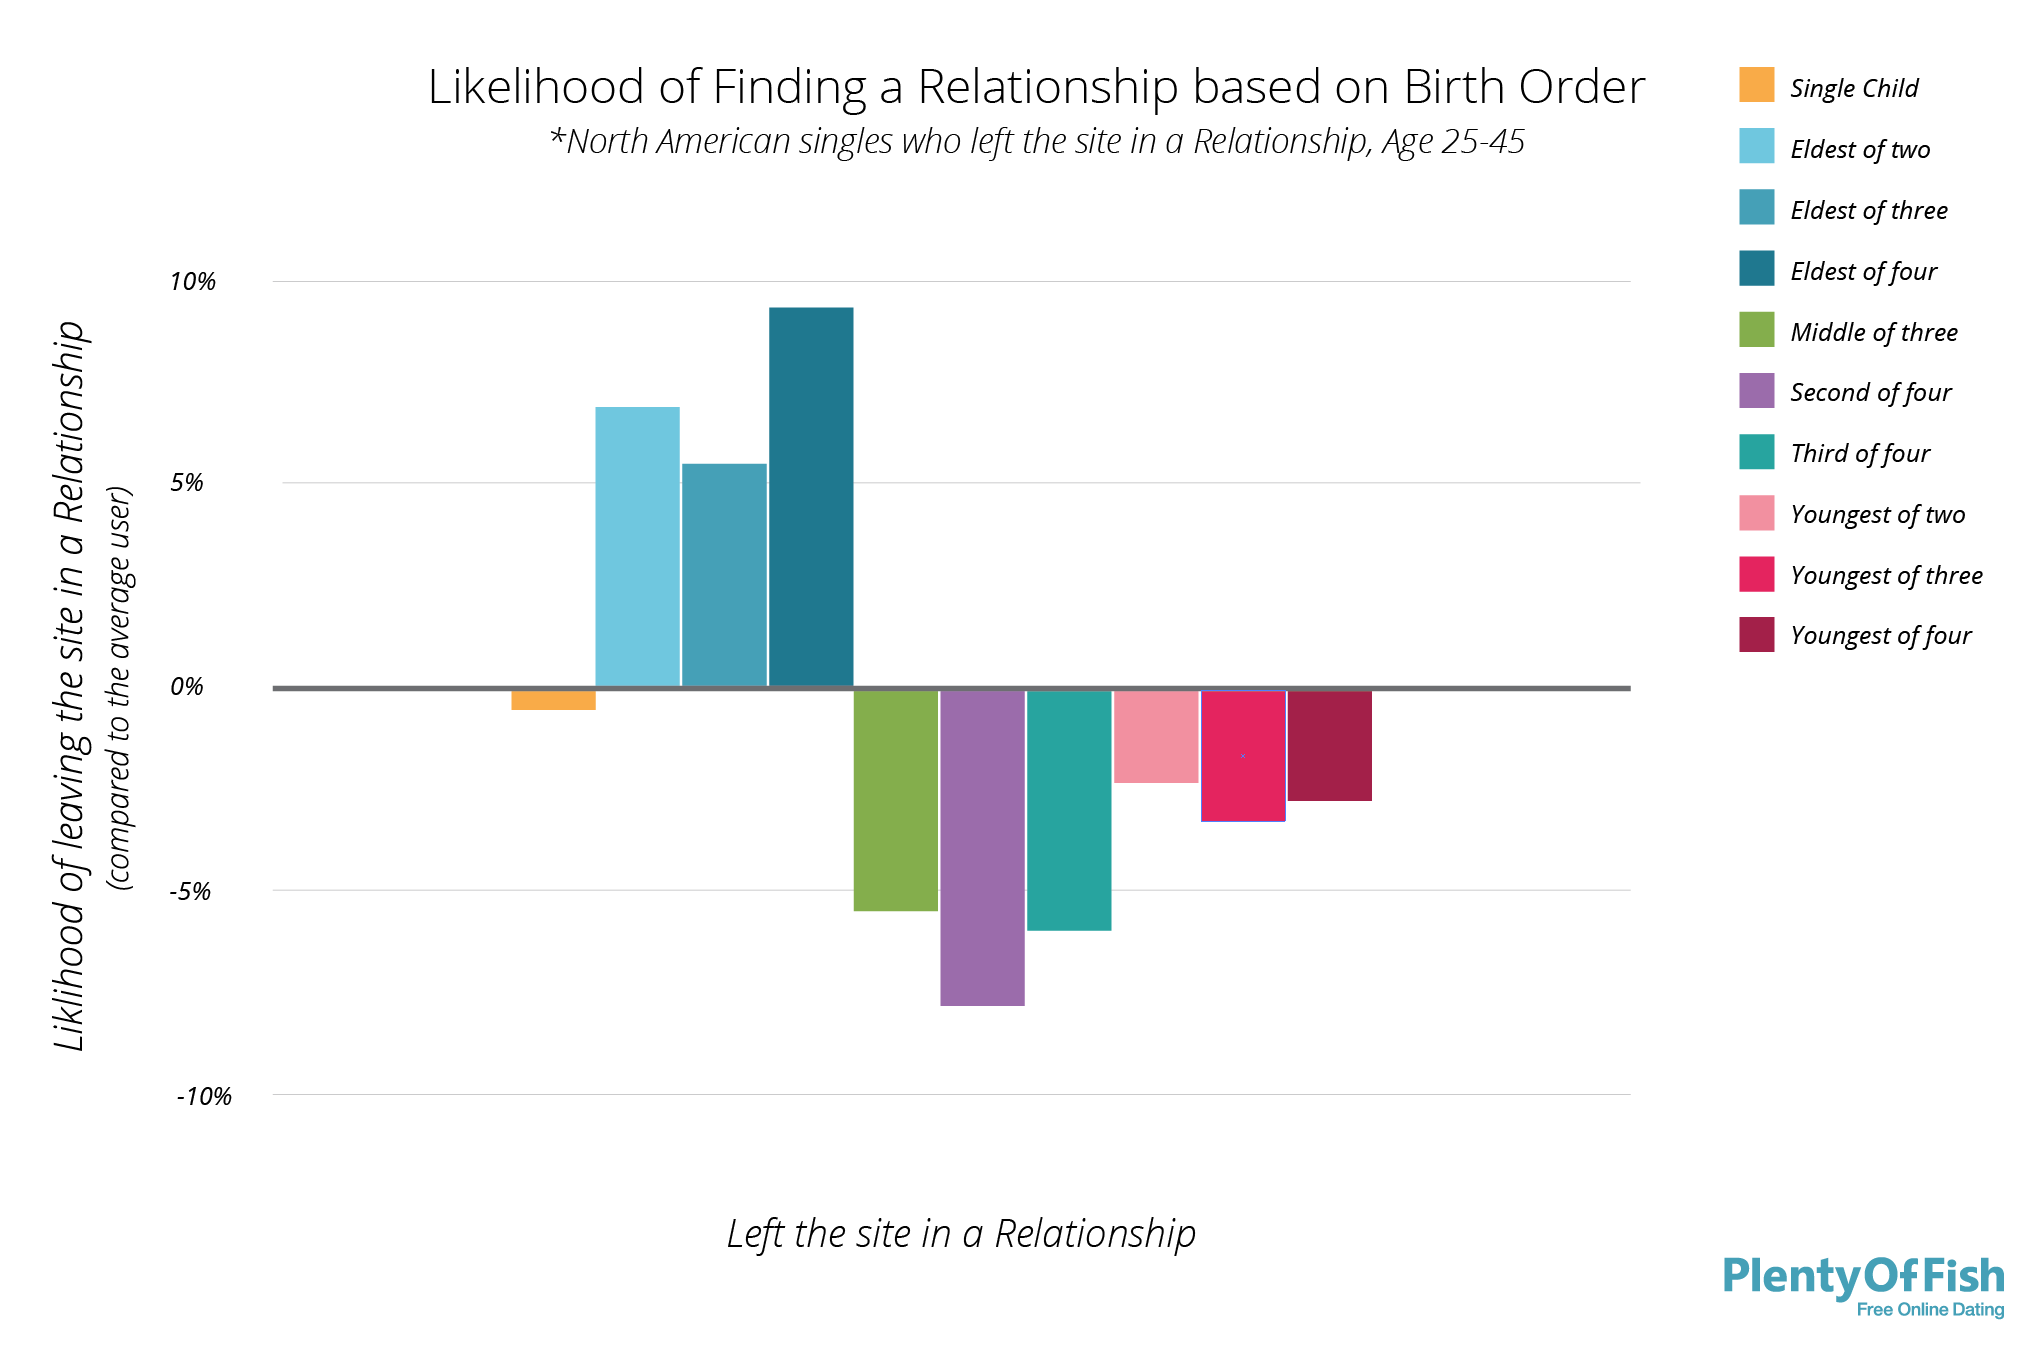 2014-06-09-FindRelationshipBirthOrder5.png